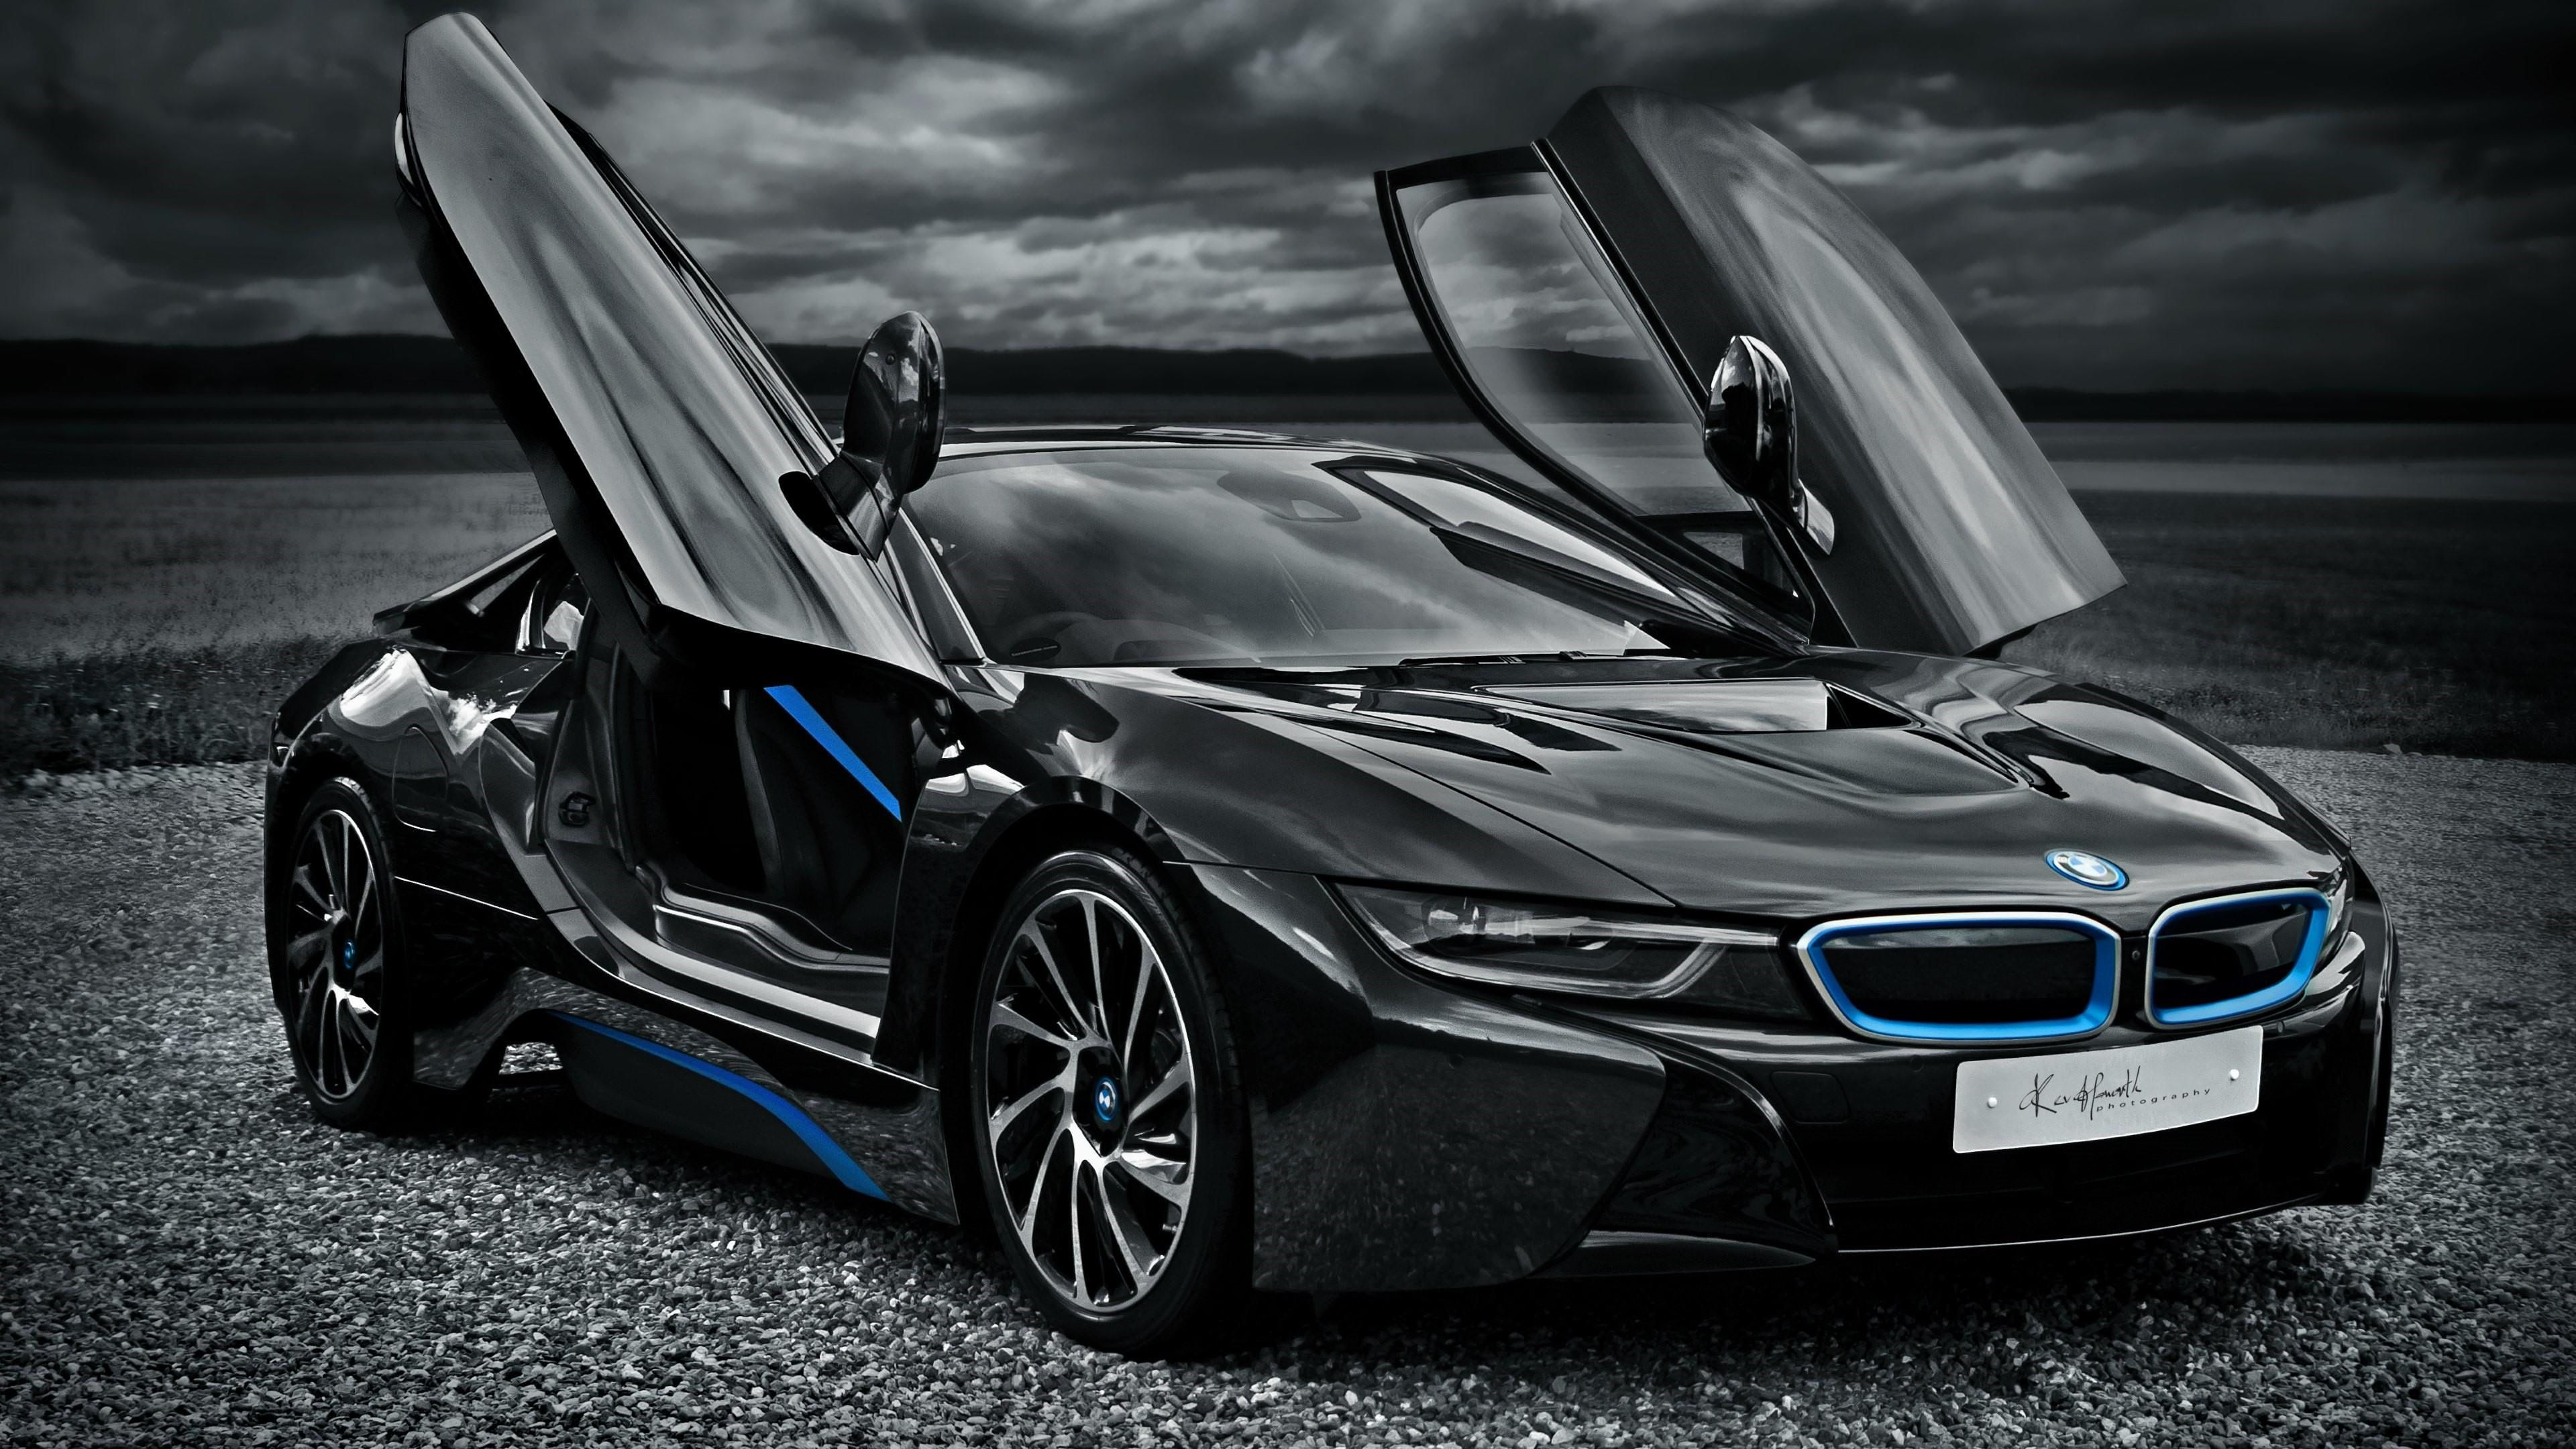 Bmw Bmw I8 Supercar Black Car Luxury Car Cloud Dark 4k Wallpaper Hdwallpaper Desktop In 2020 Bmw I8 Bmw I8 Black Bmw